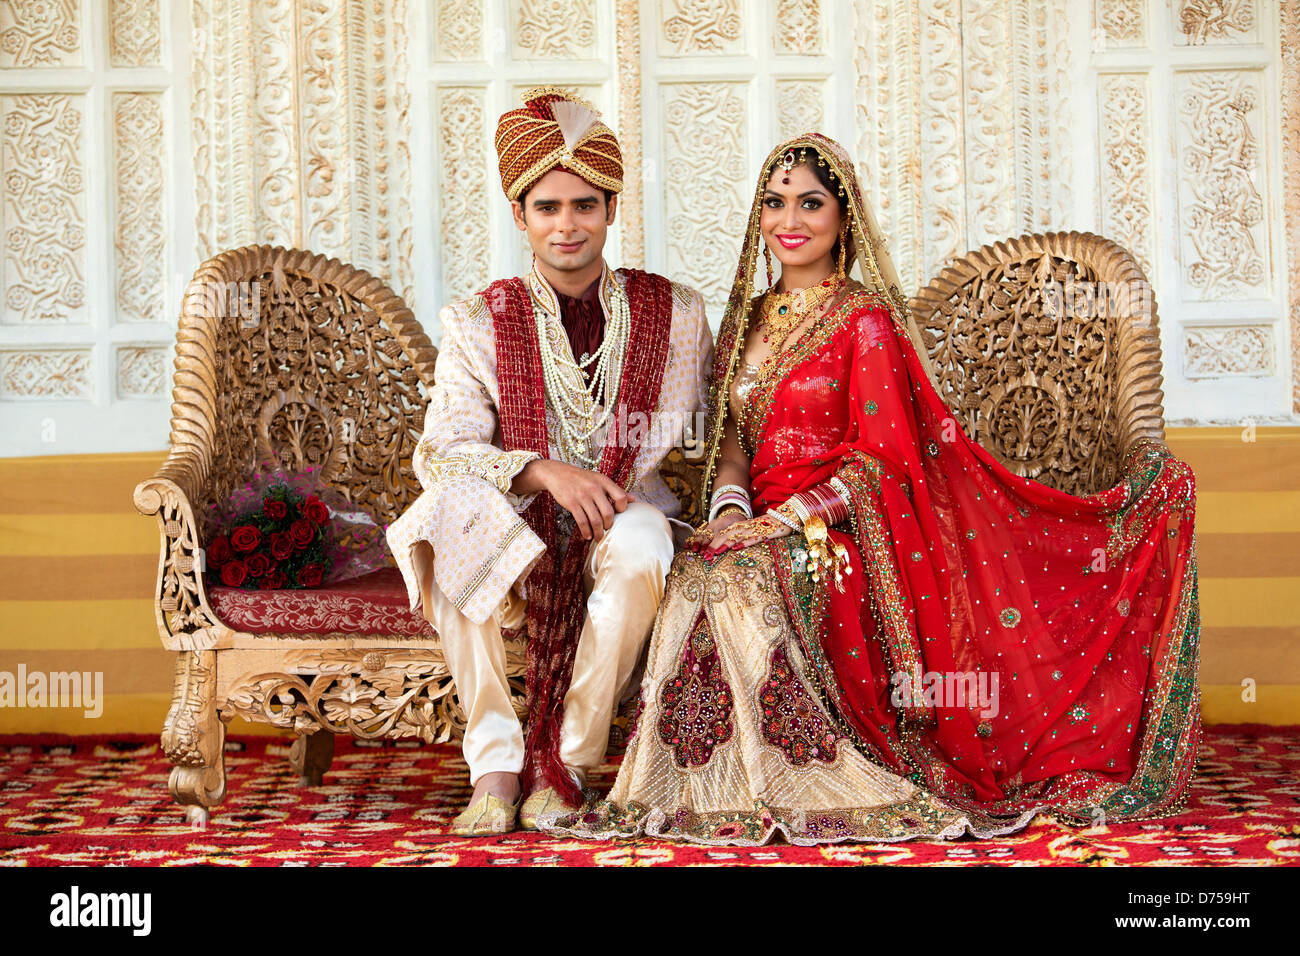 Indian bride and groom in traditional wedding dress sitting on a ...